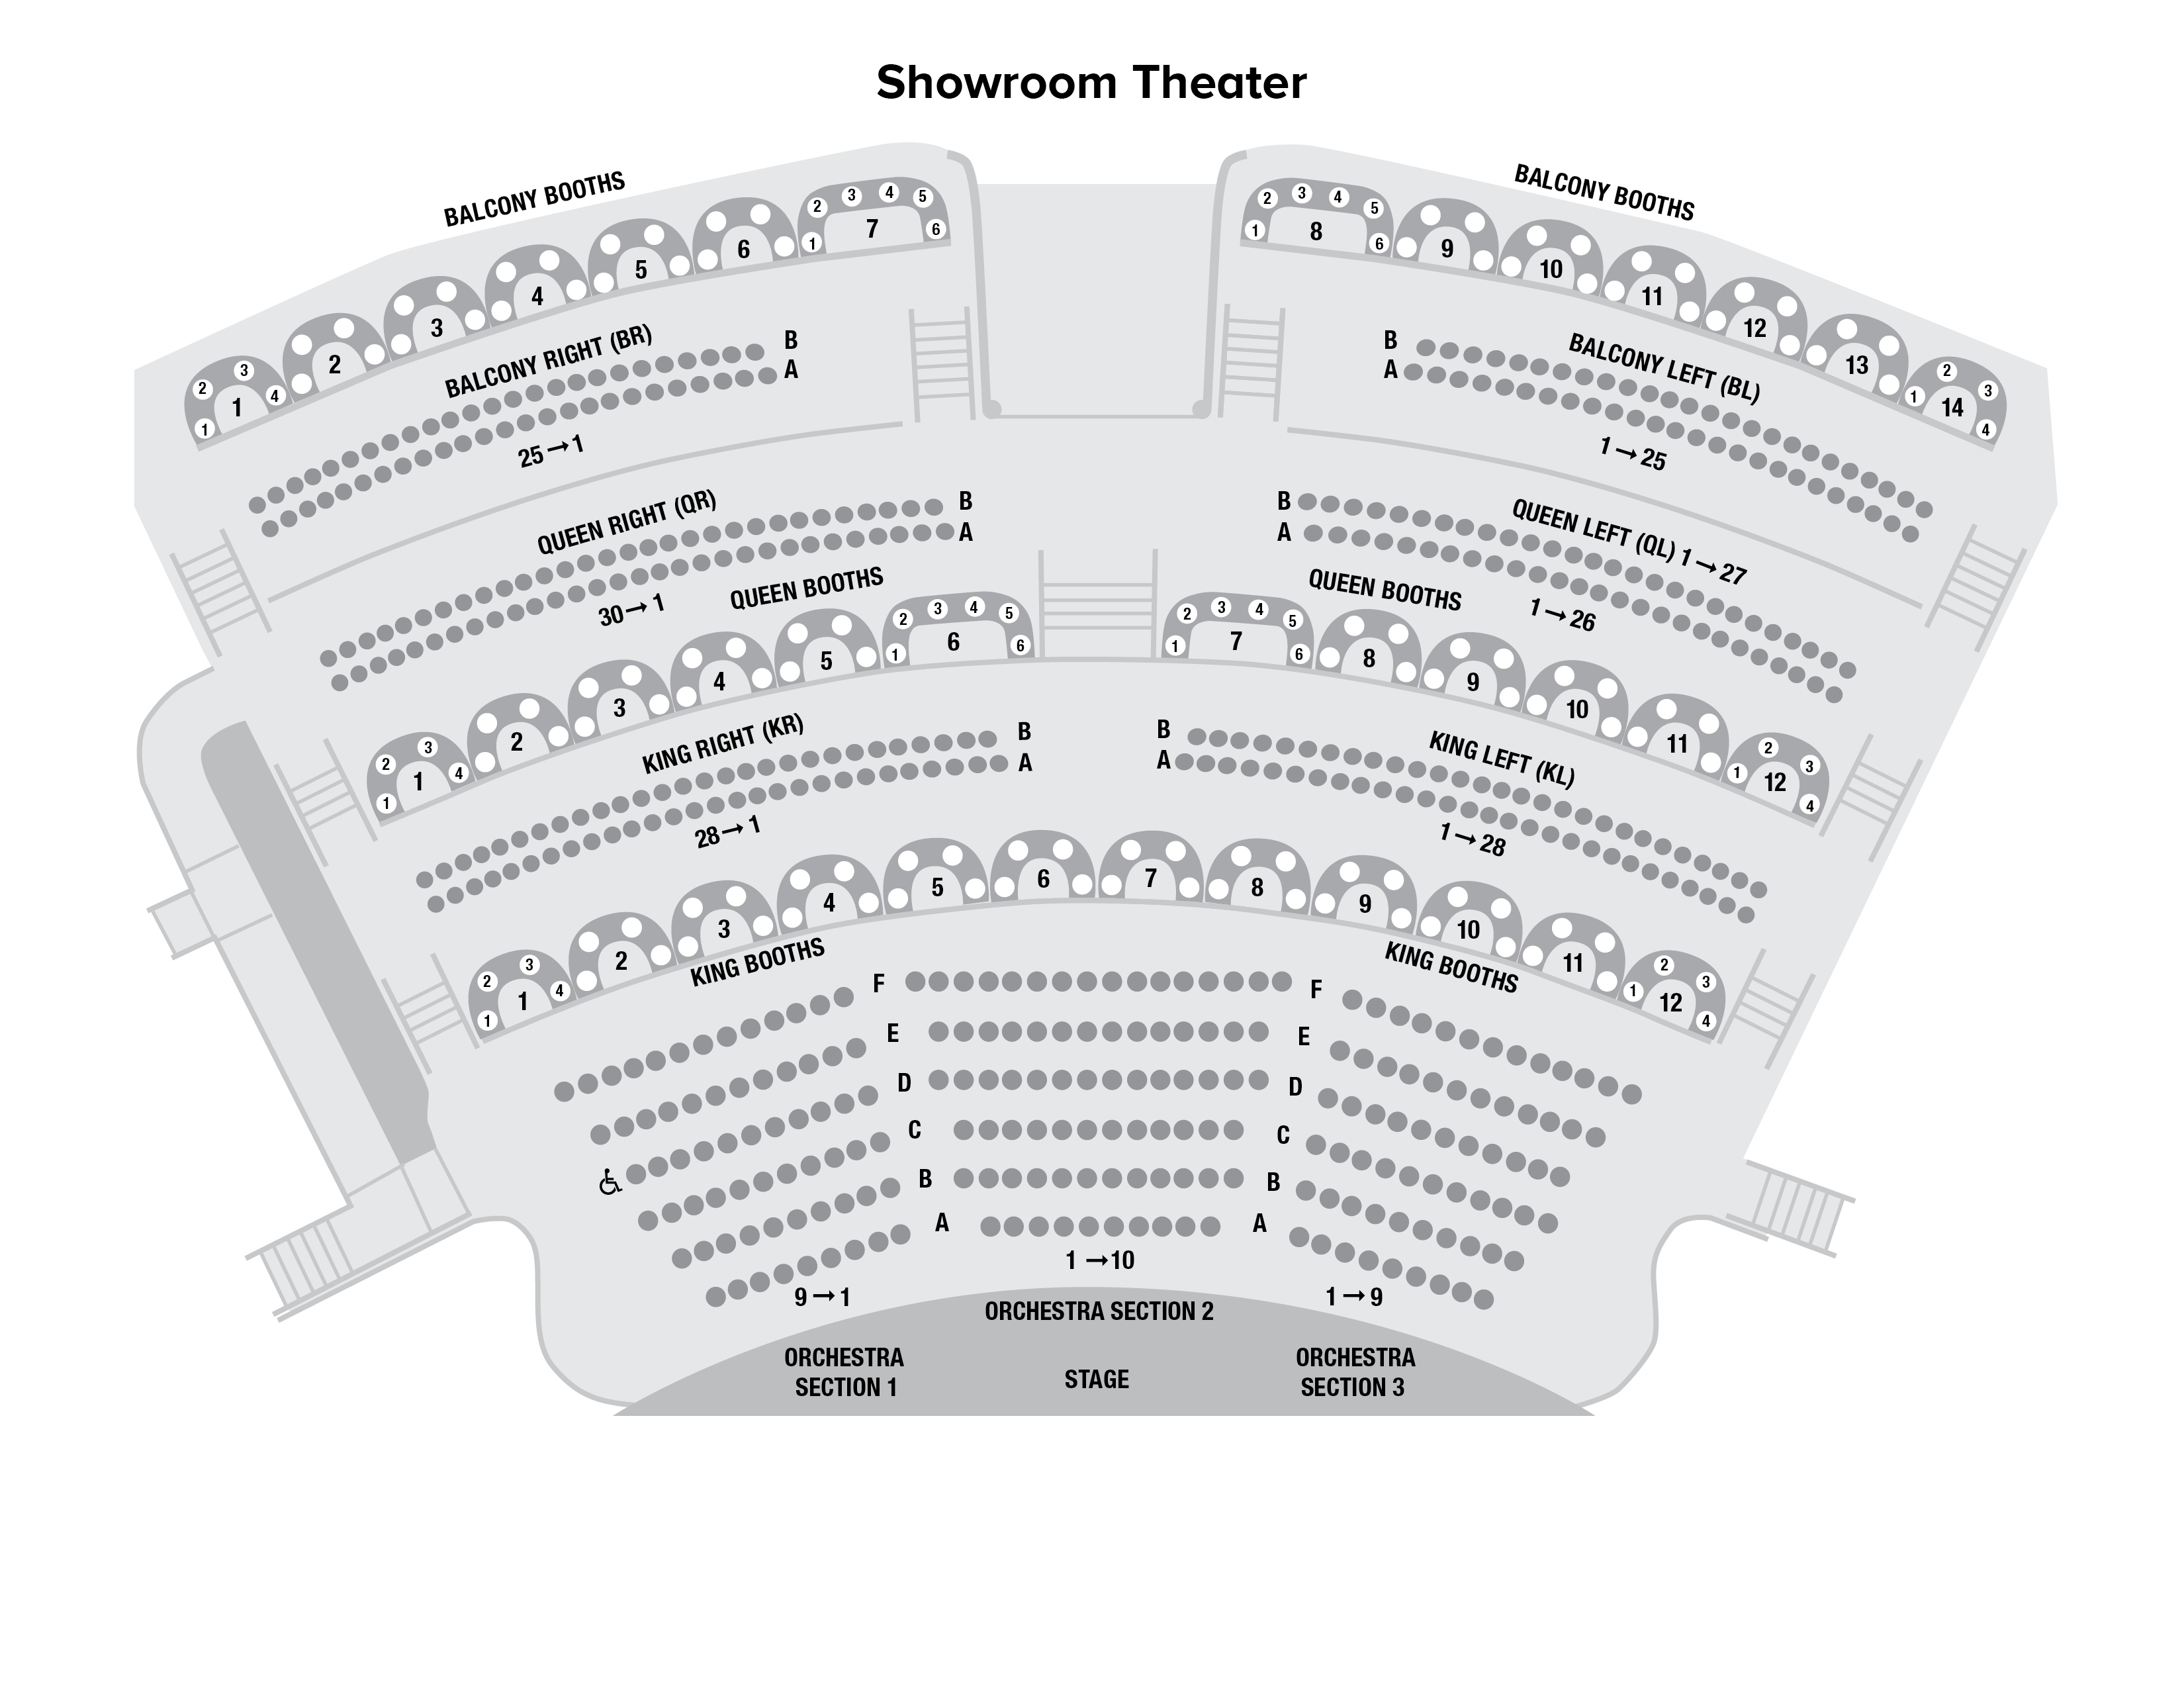 Showroom Theater